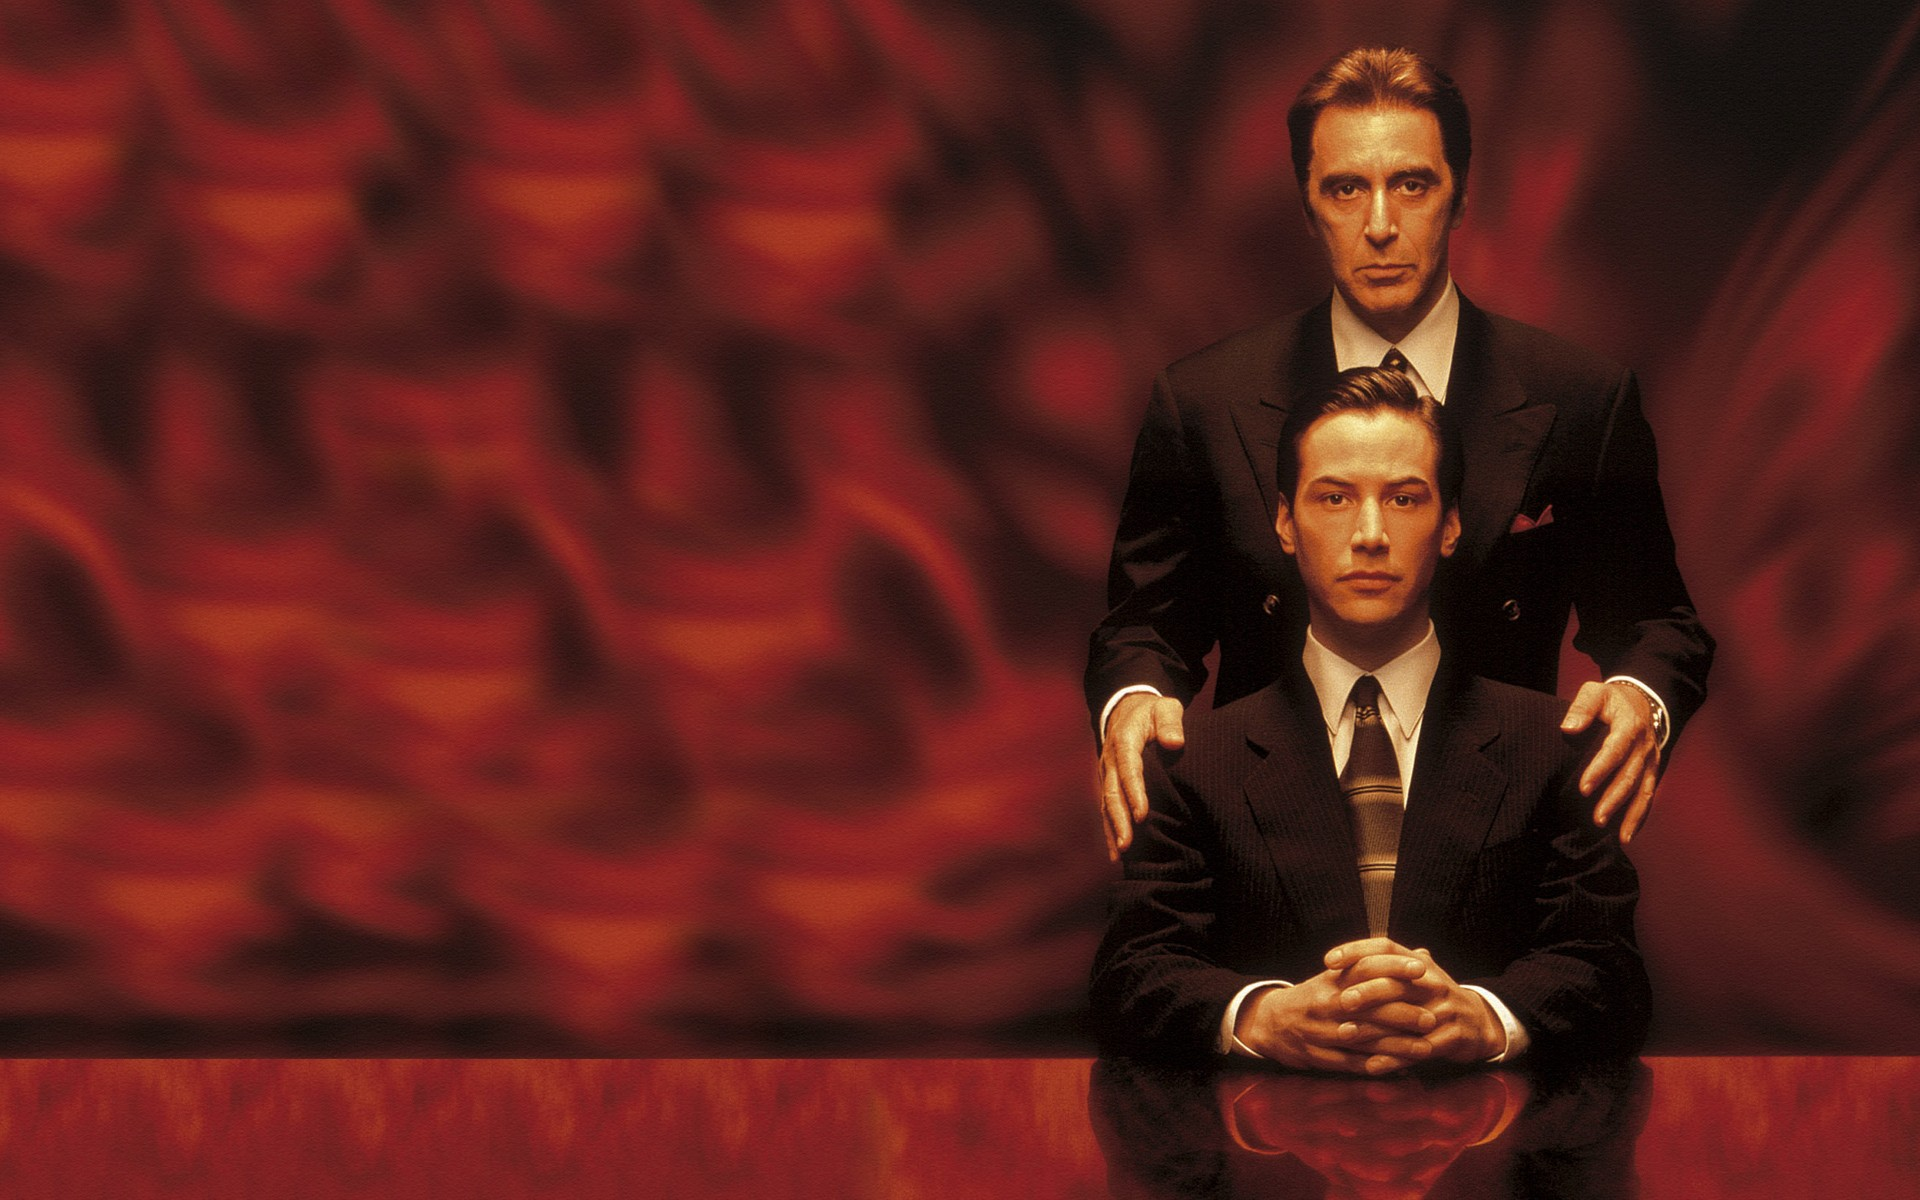 an analysis of the movie the devils advocate with actors keanu reeves and al pacino The version table provides details related to the release that this issue/rfe will be addressed unresolved: release in which this issue/rfe will be addressed resolved: release in which this issue/rfe has been resolved.